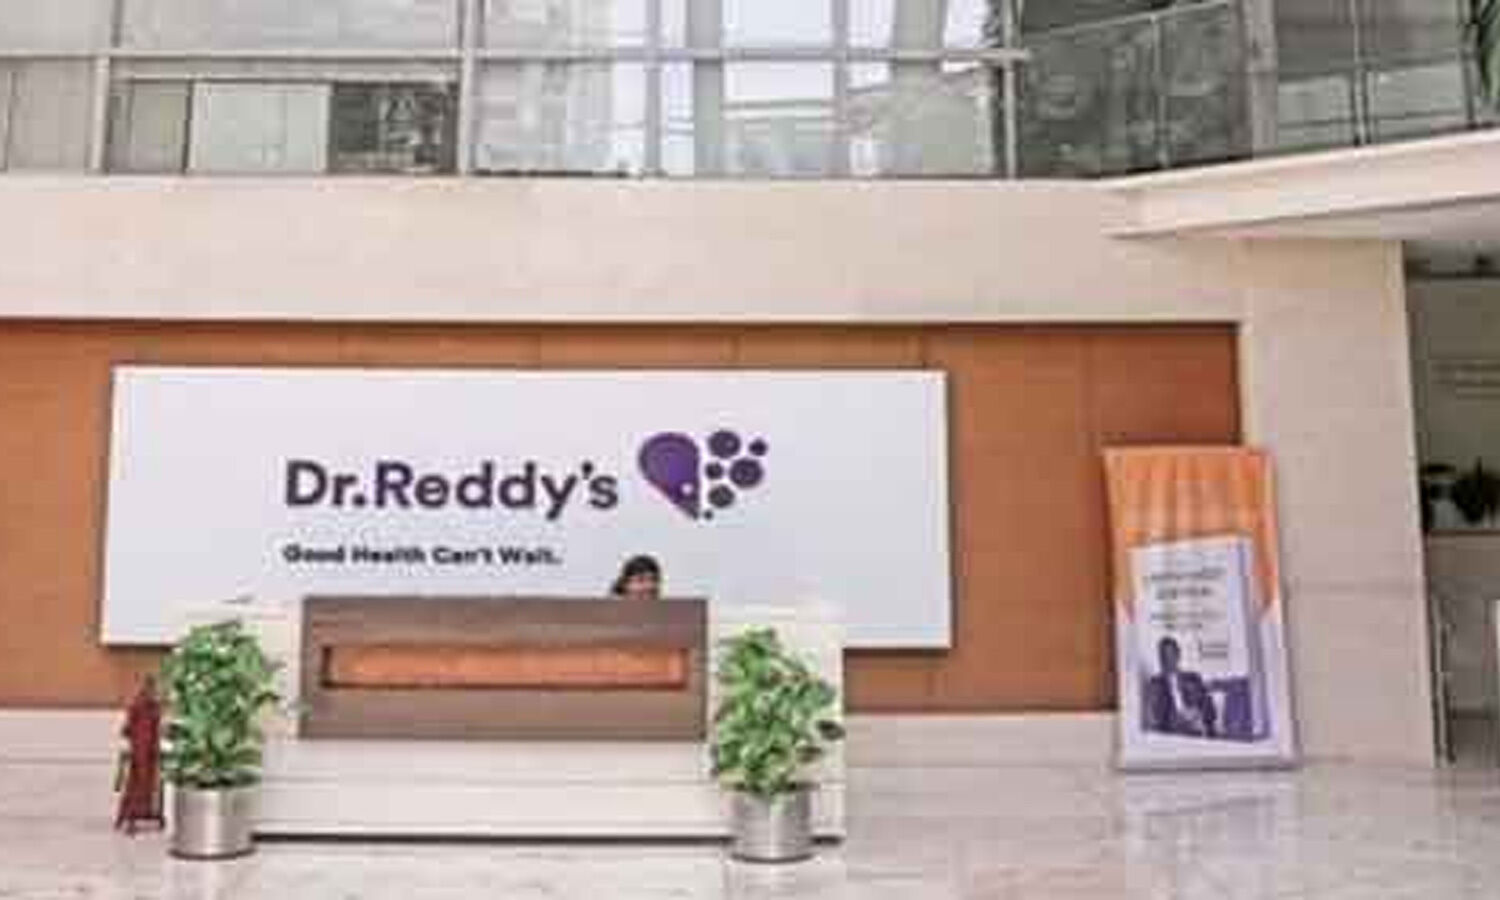 Dr Reddys Laboratories launches generic of Naproxen, Esomeprazole Magnesium Delayed-Release Tablets